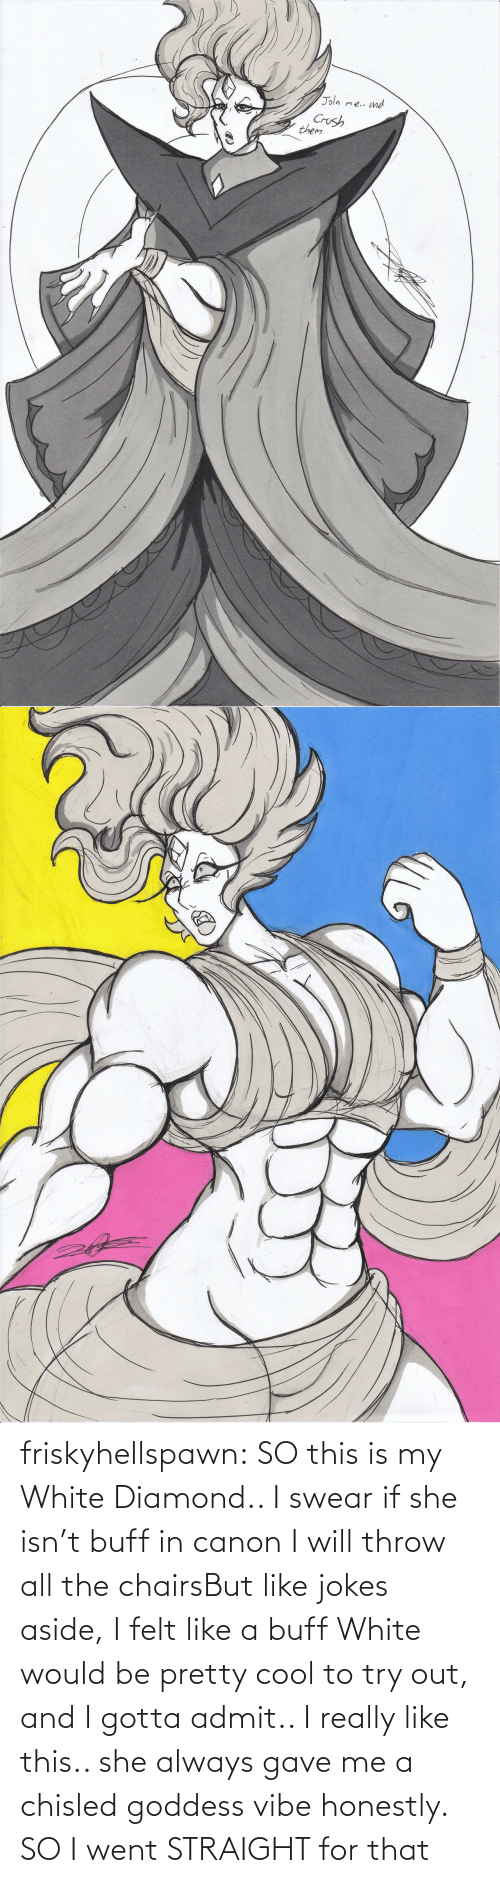 chairs: friskyhellspawn:  SO this is my White Diamond.. I swear if she isn't buff in canon I will throw all the chairsBut like jokes aside, I felt like a buff White would be pretty cool to try out, and I gotta admit.. I really like this.. she always gave me a chisled goddess vibe honestly. SO I went STRAIGHT for that